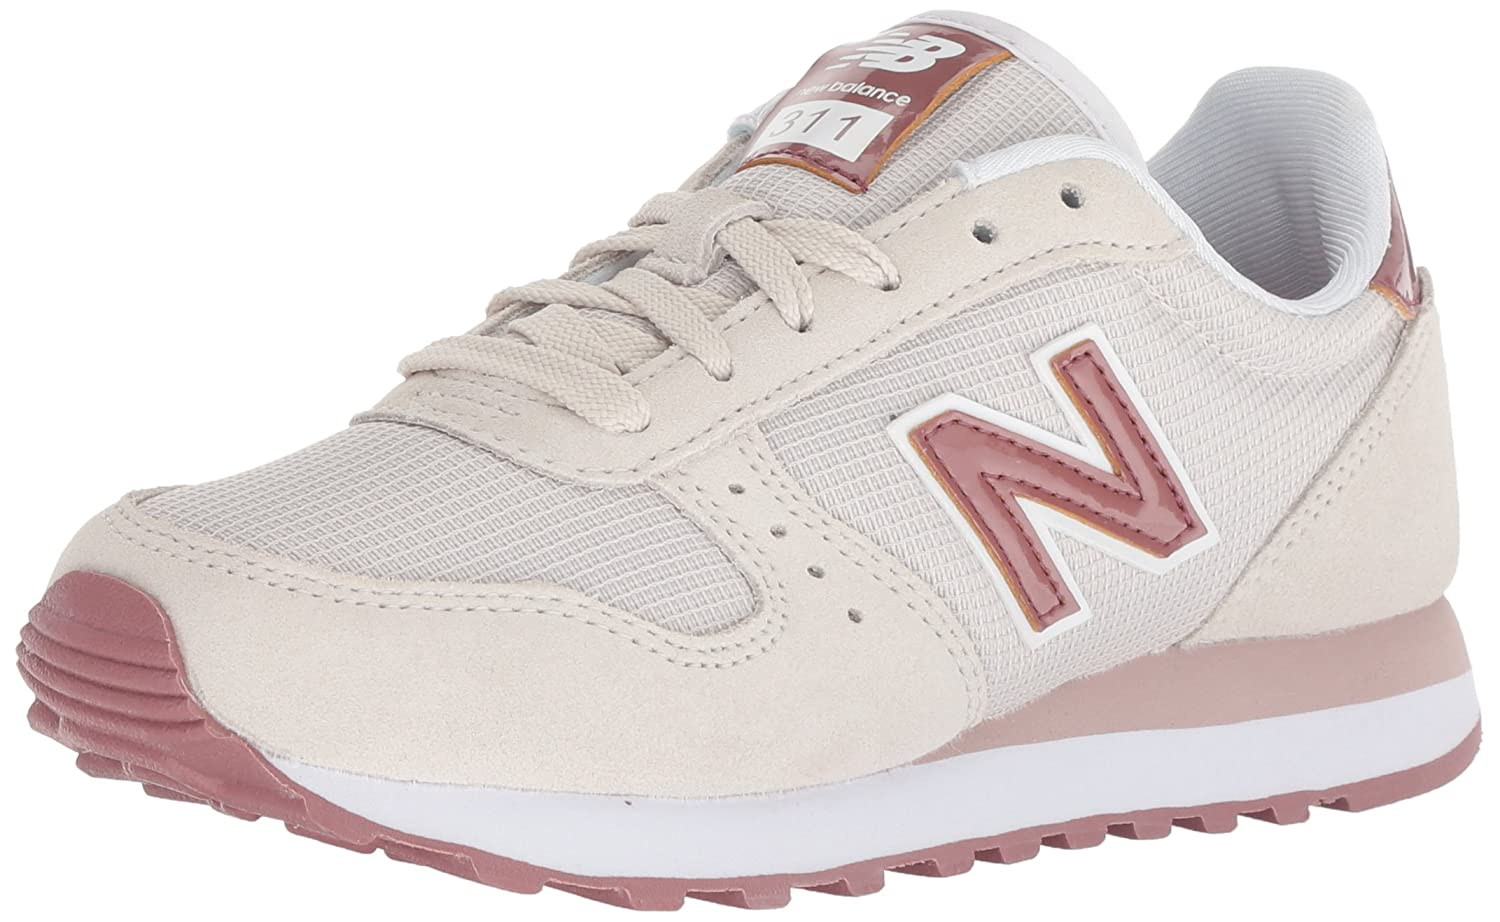 New Balance Women's 311v1 Sneaker B075R6VHDJ 6 B(M) US|Moonbeam